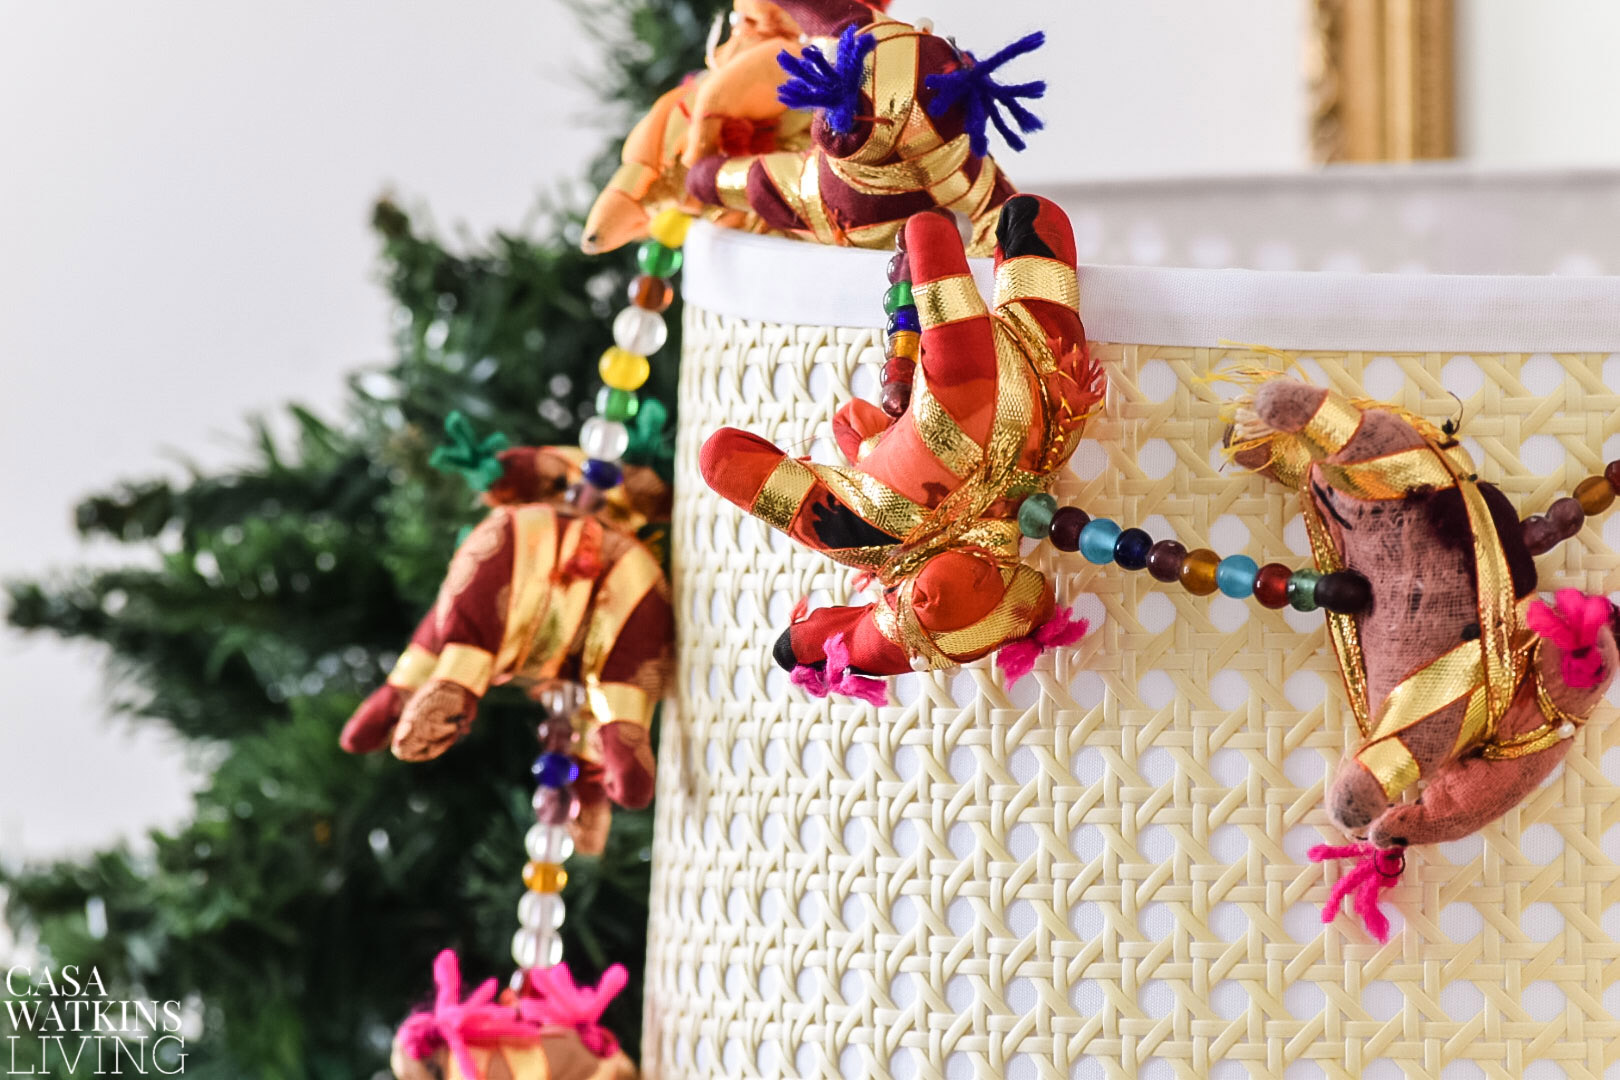 Indian elephant garland as lampshade decor